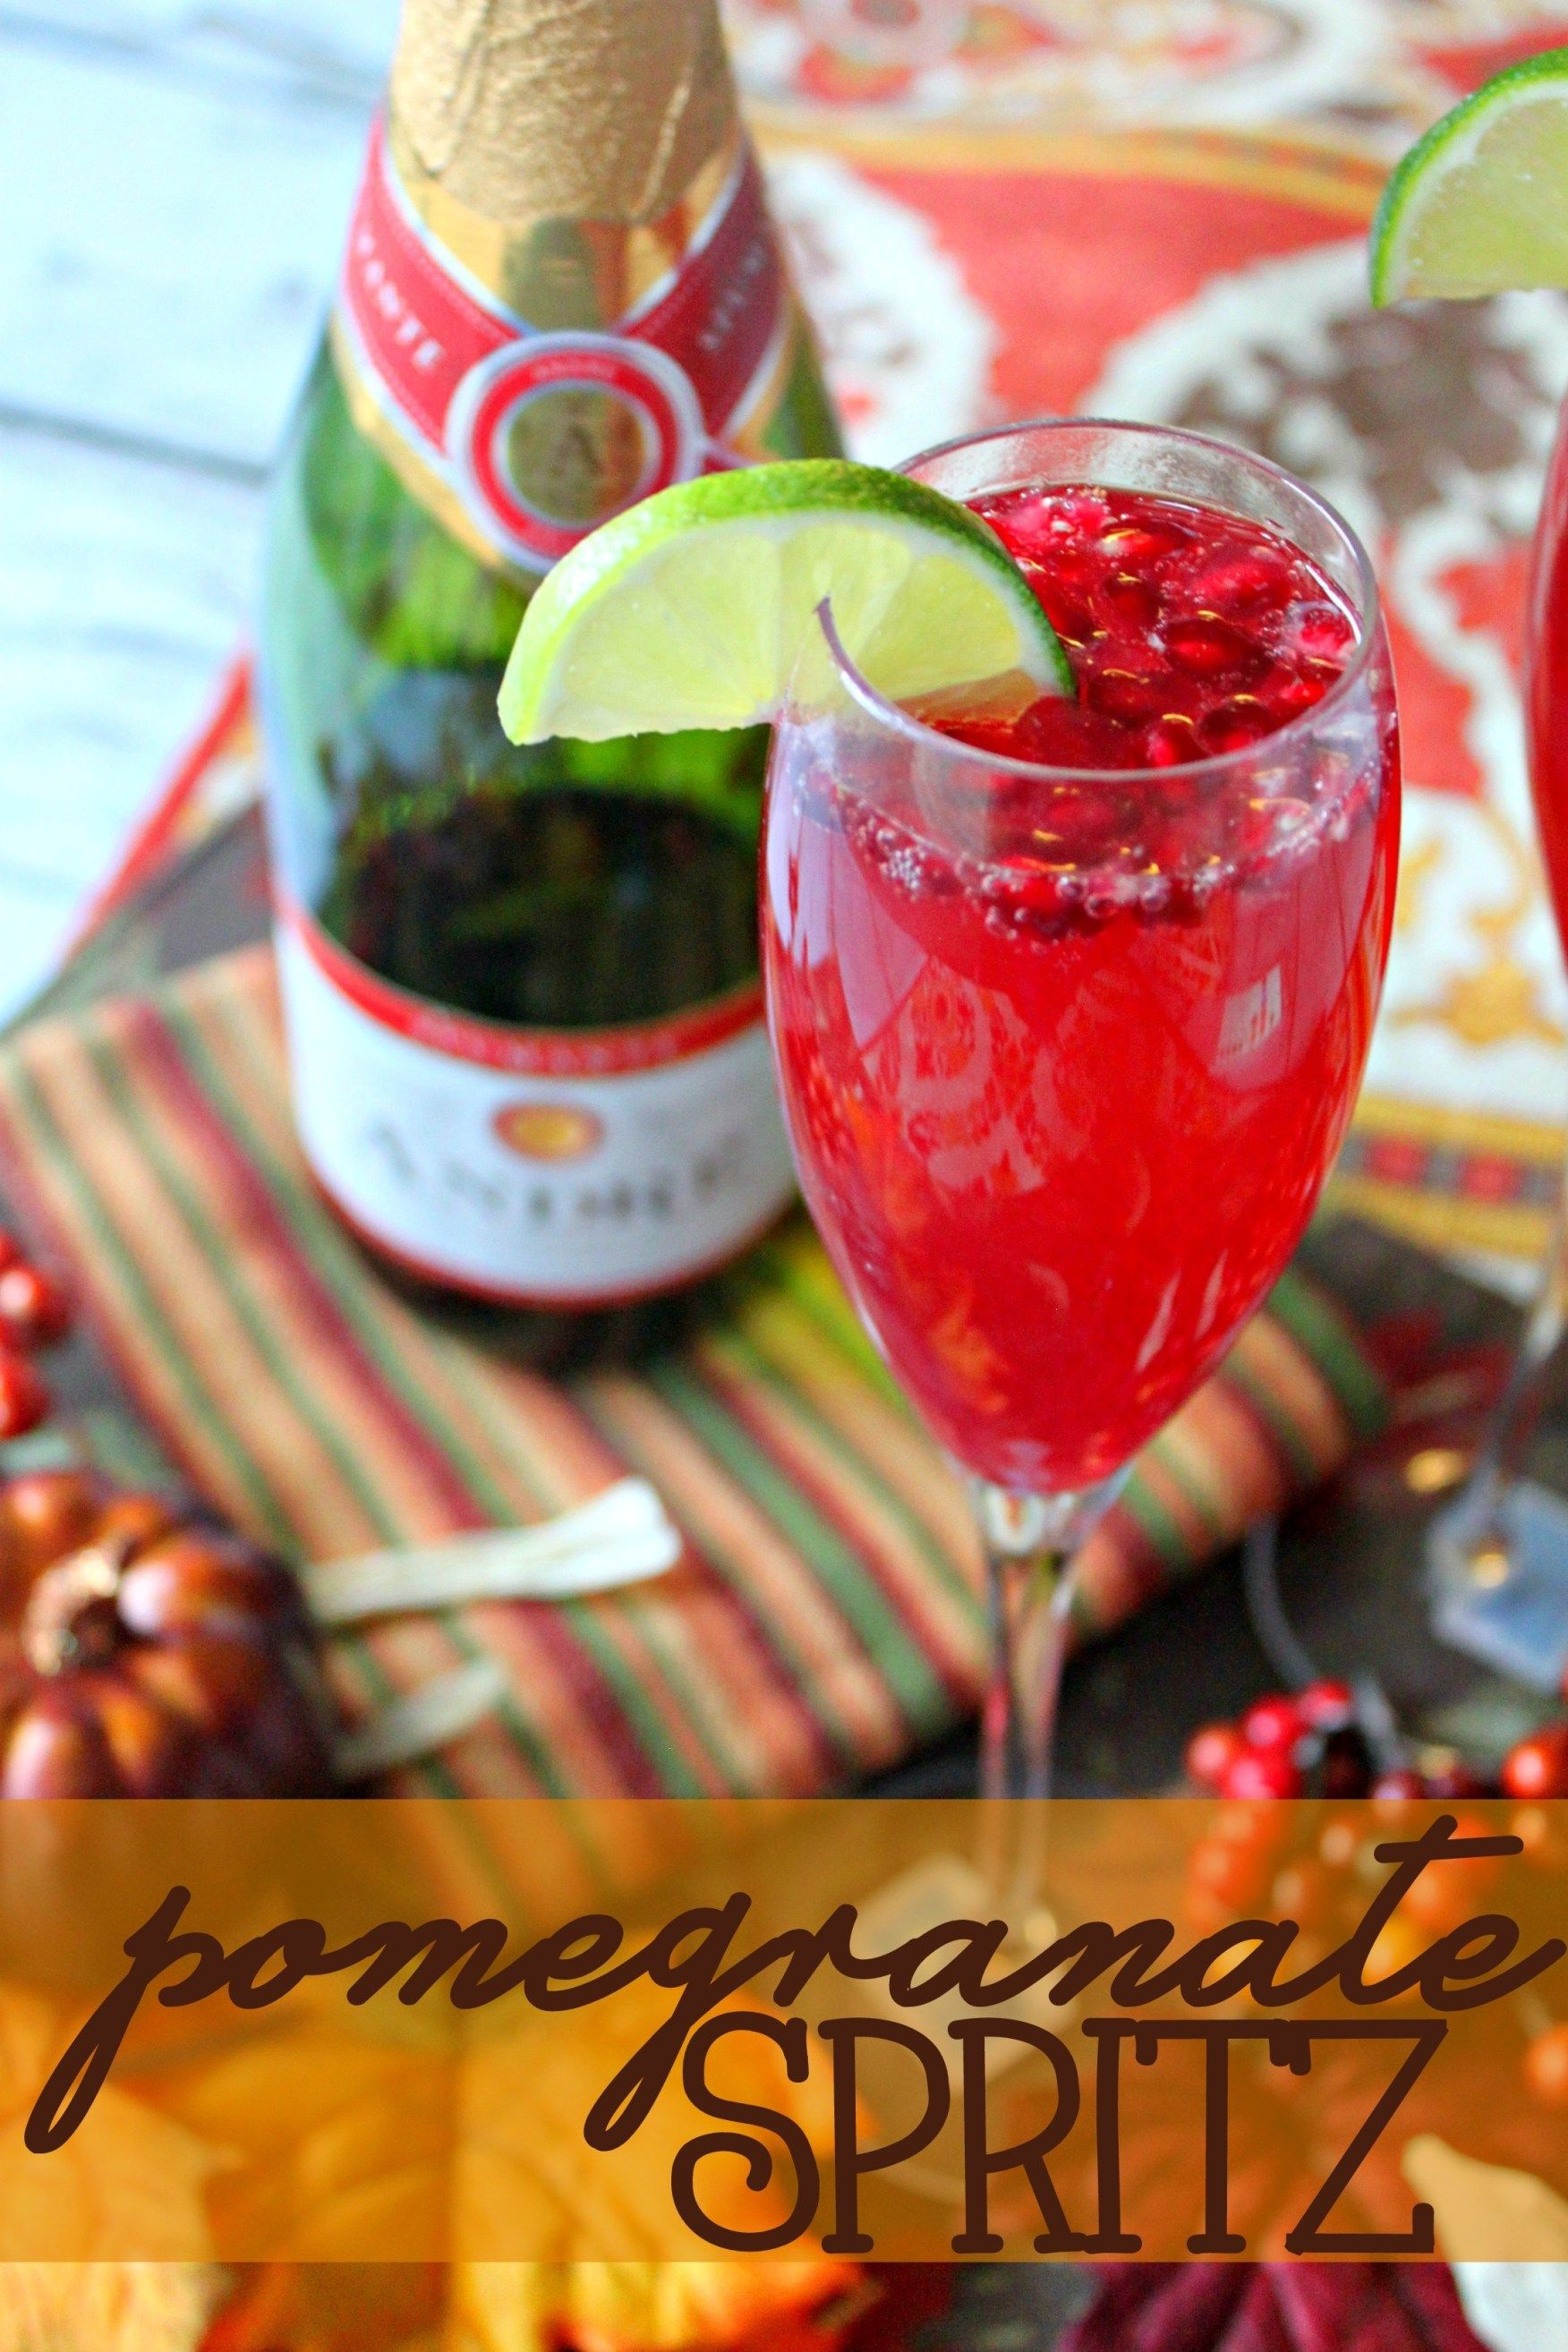 Fall Champagne Cocktails With Andre Champagne Epicwithandre Cocktails Champagne Cocktail